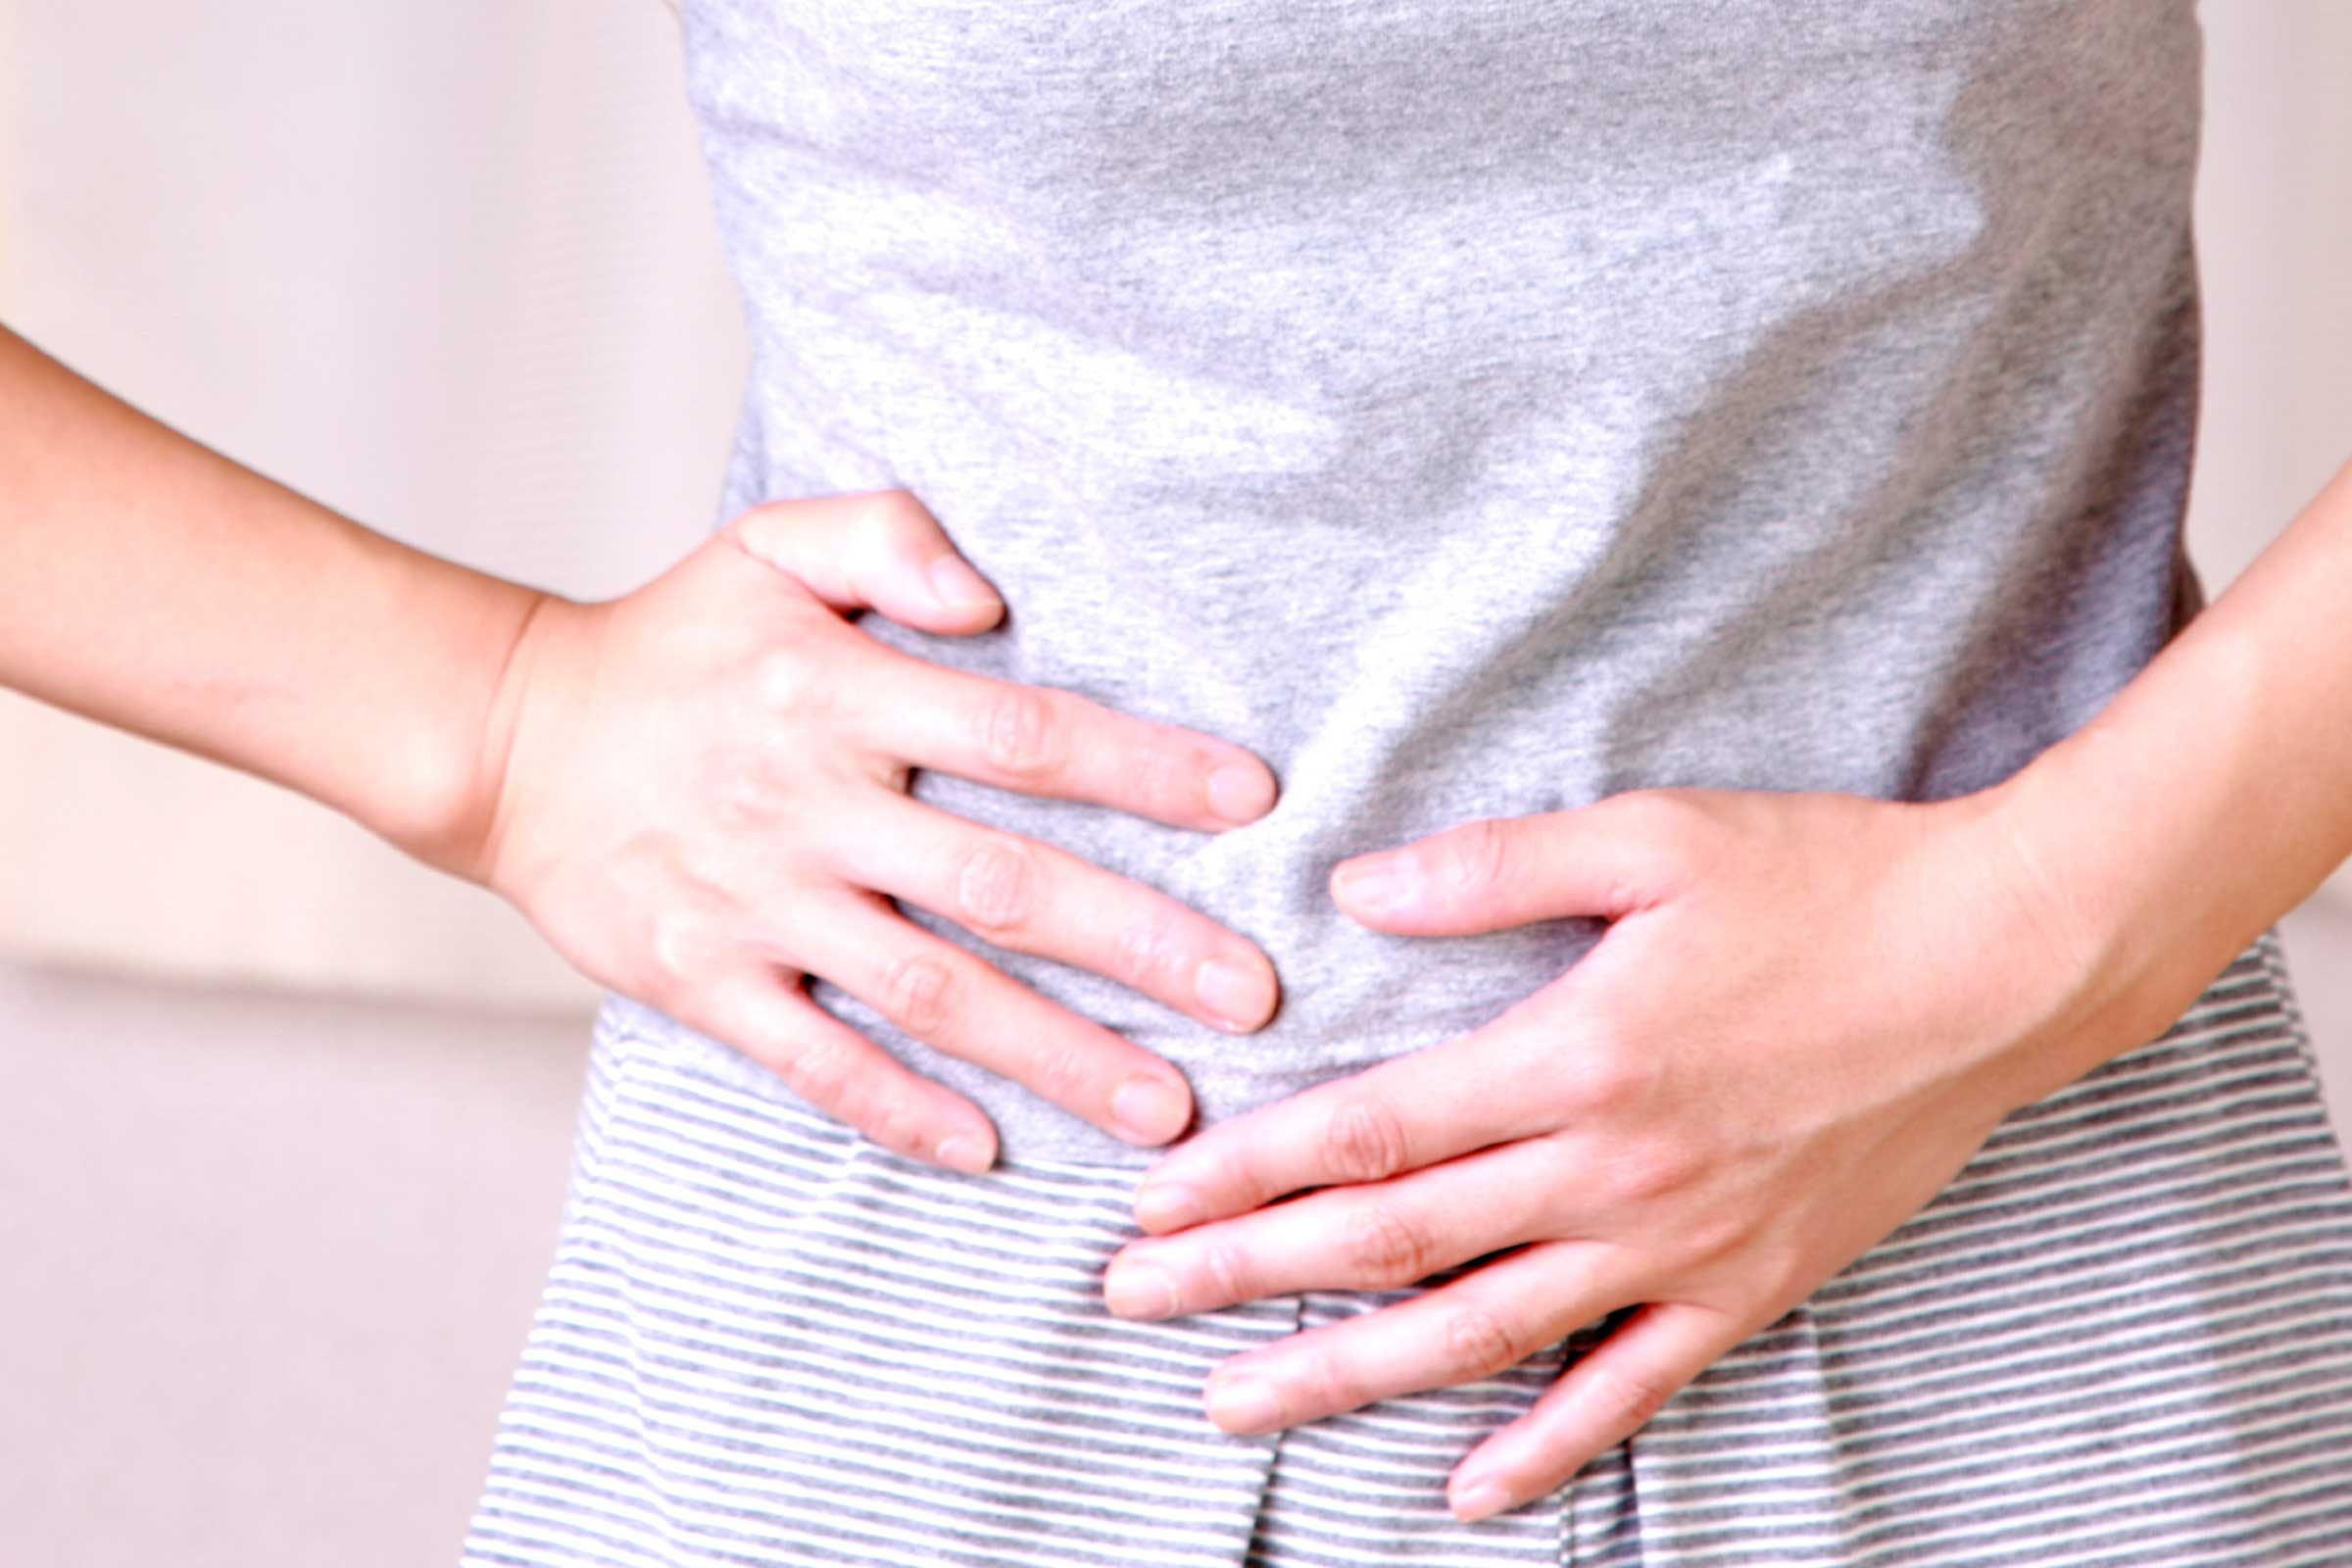 Stomach Pain Causes: Reasons for Abdominal Pain | The Healthy